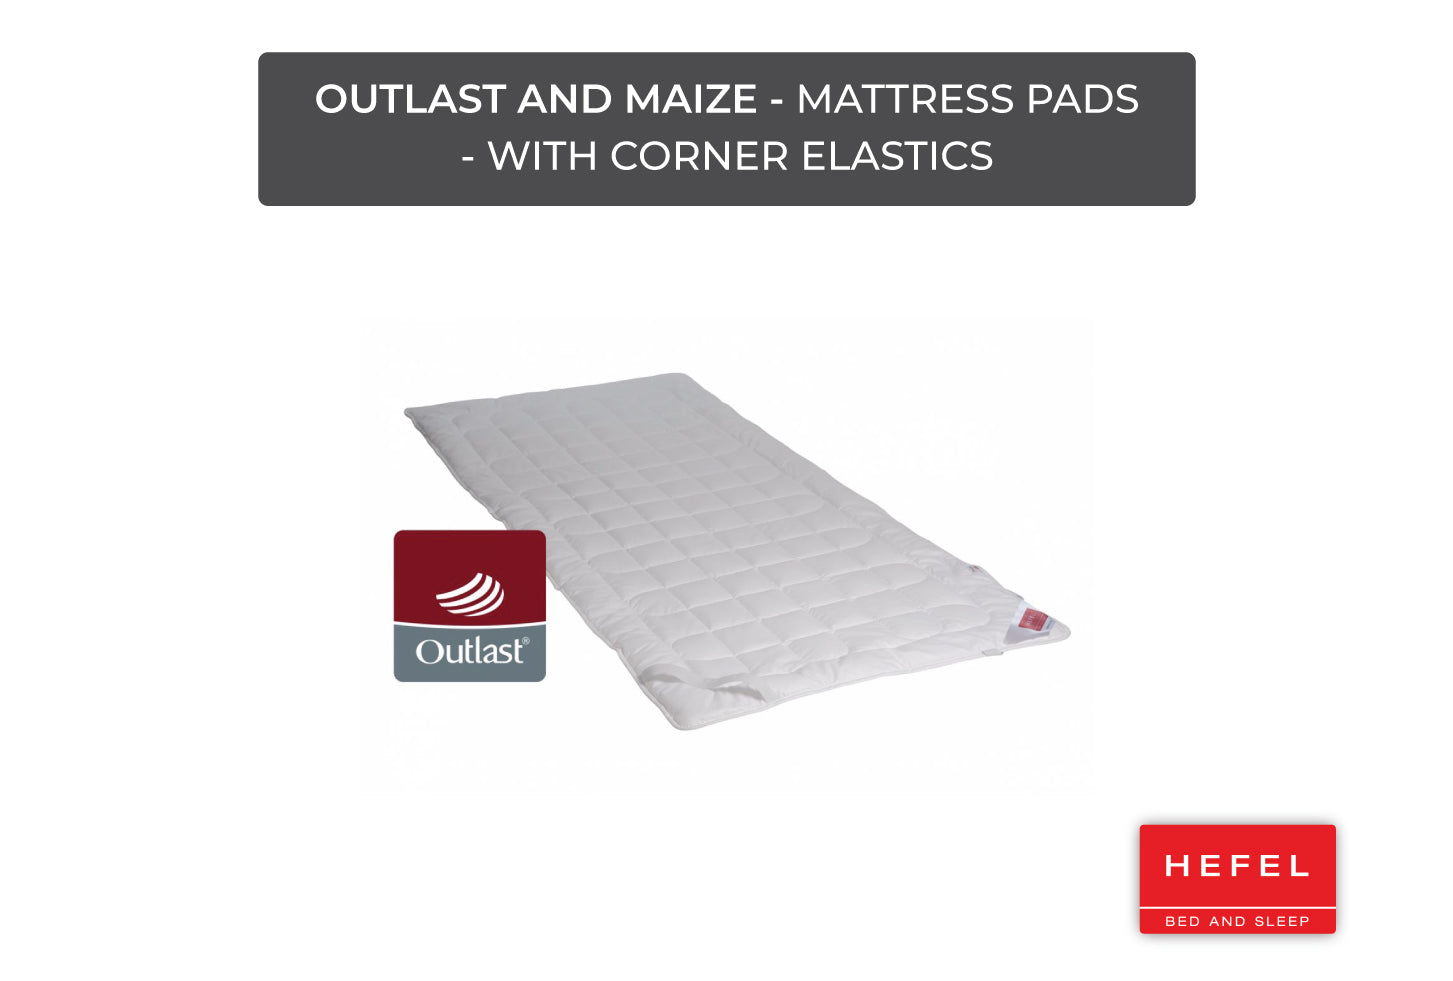 Outlast and Maize - Mattress Pads - with corner elastics